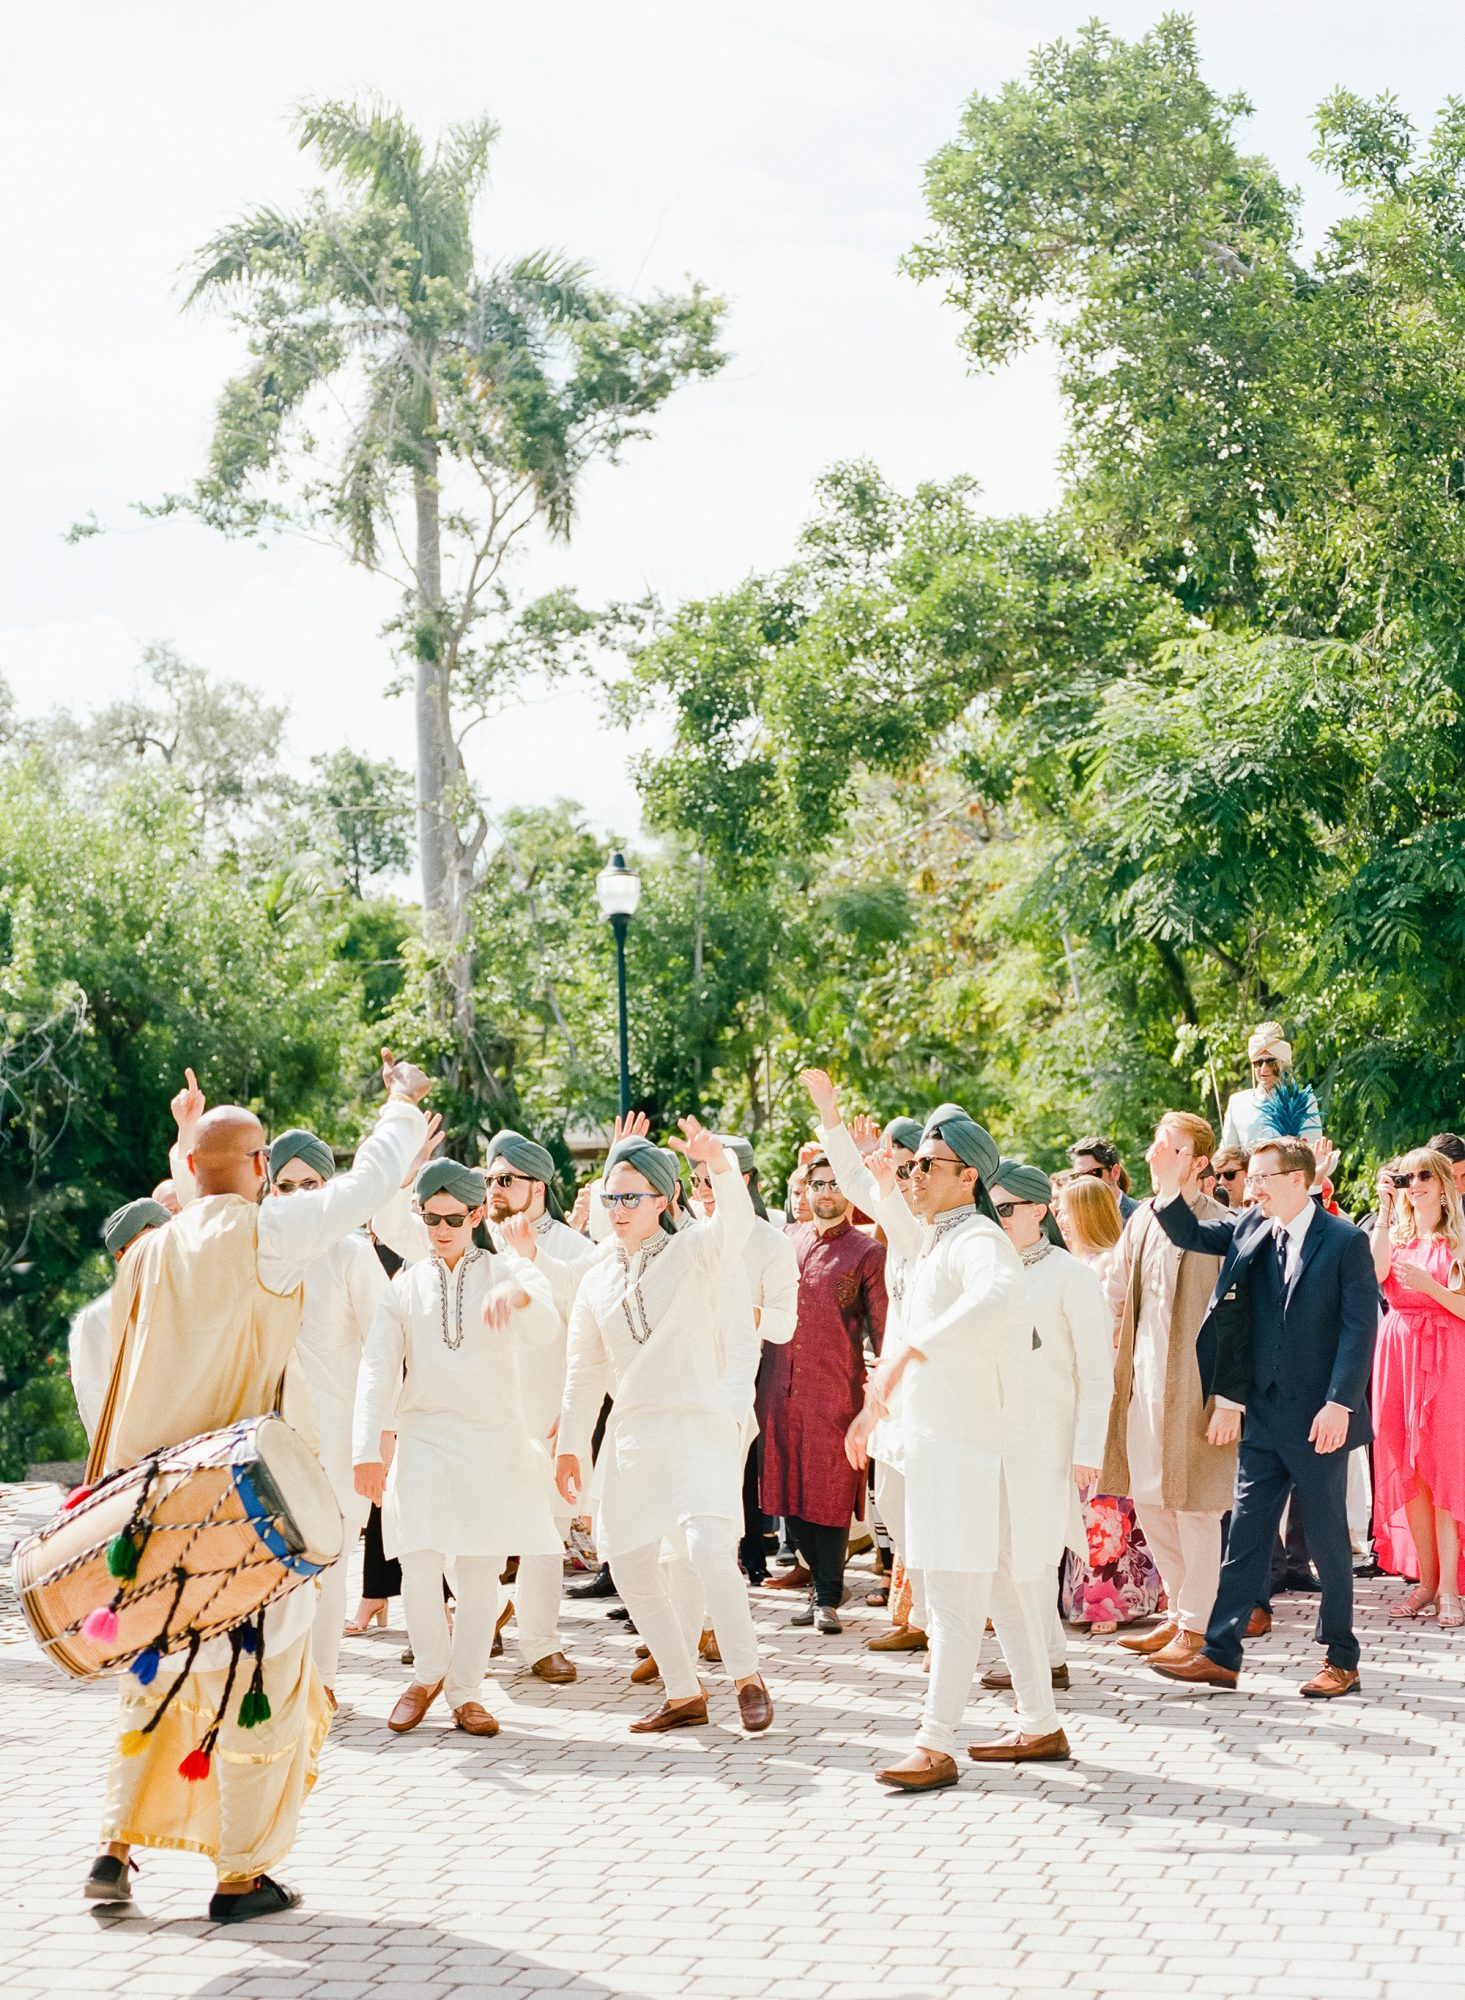 anuja nikhil wedding baraat with bridesmaids